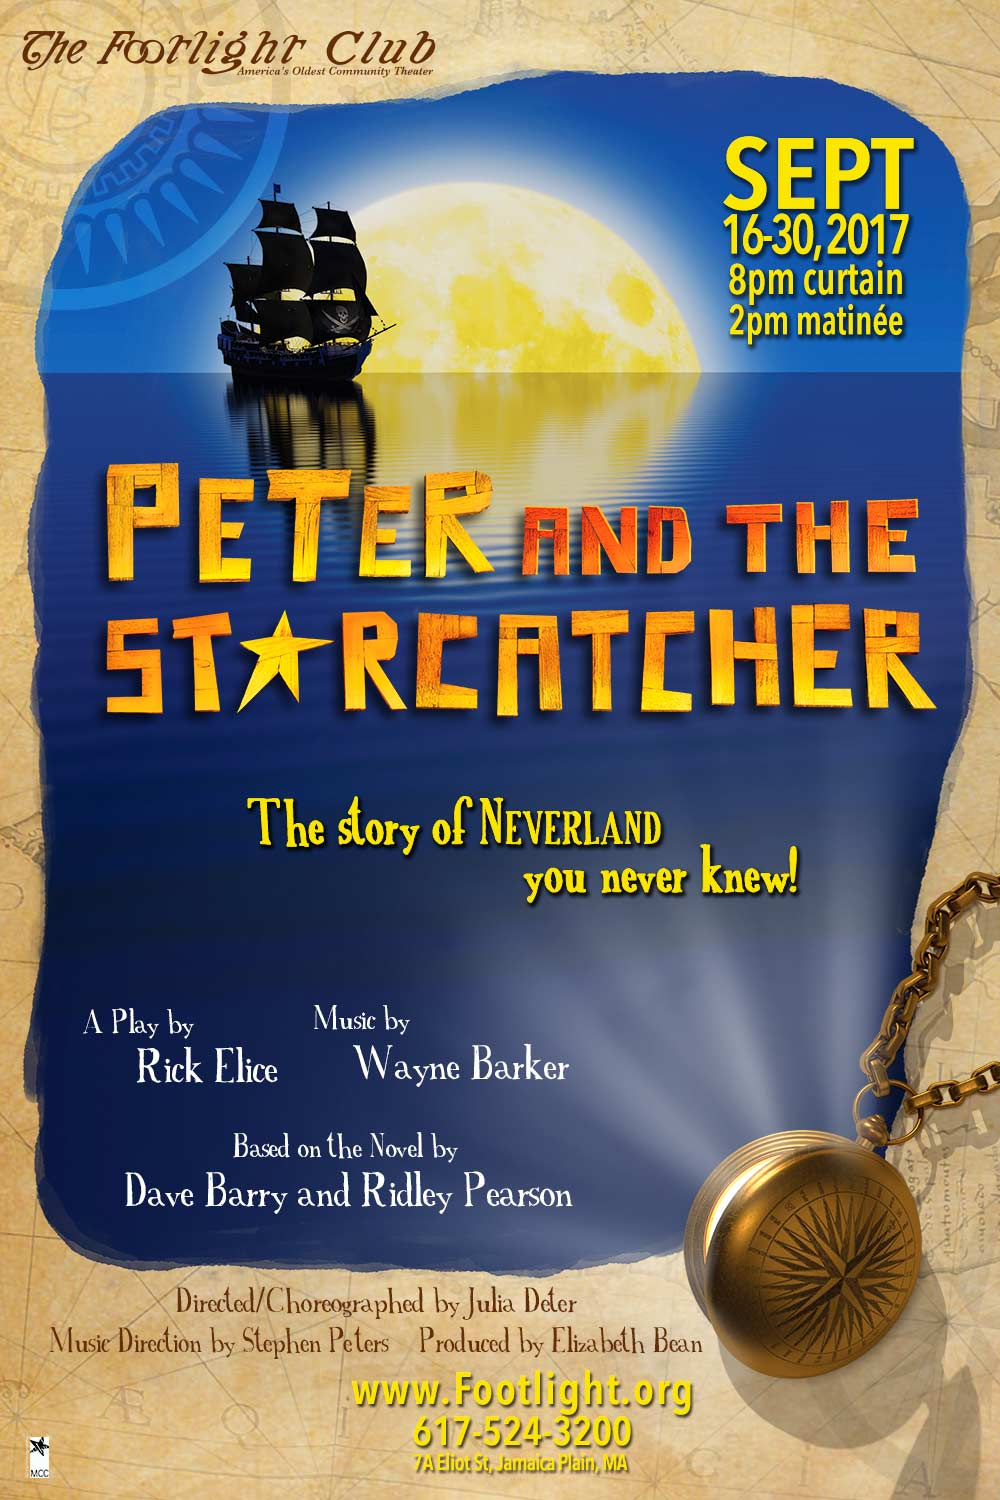 Peter and The Starcatcher, at the Footlight Club